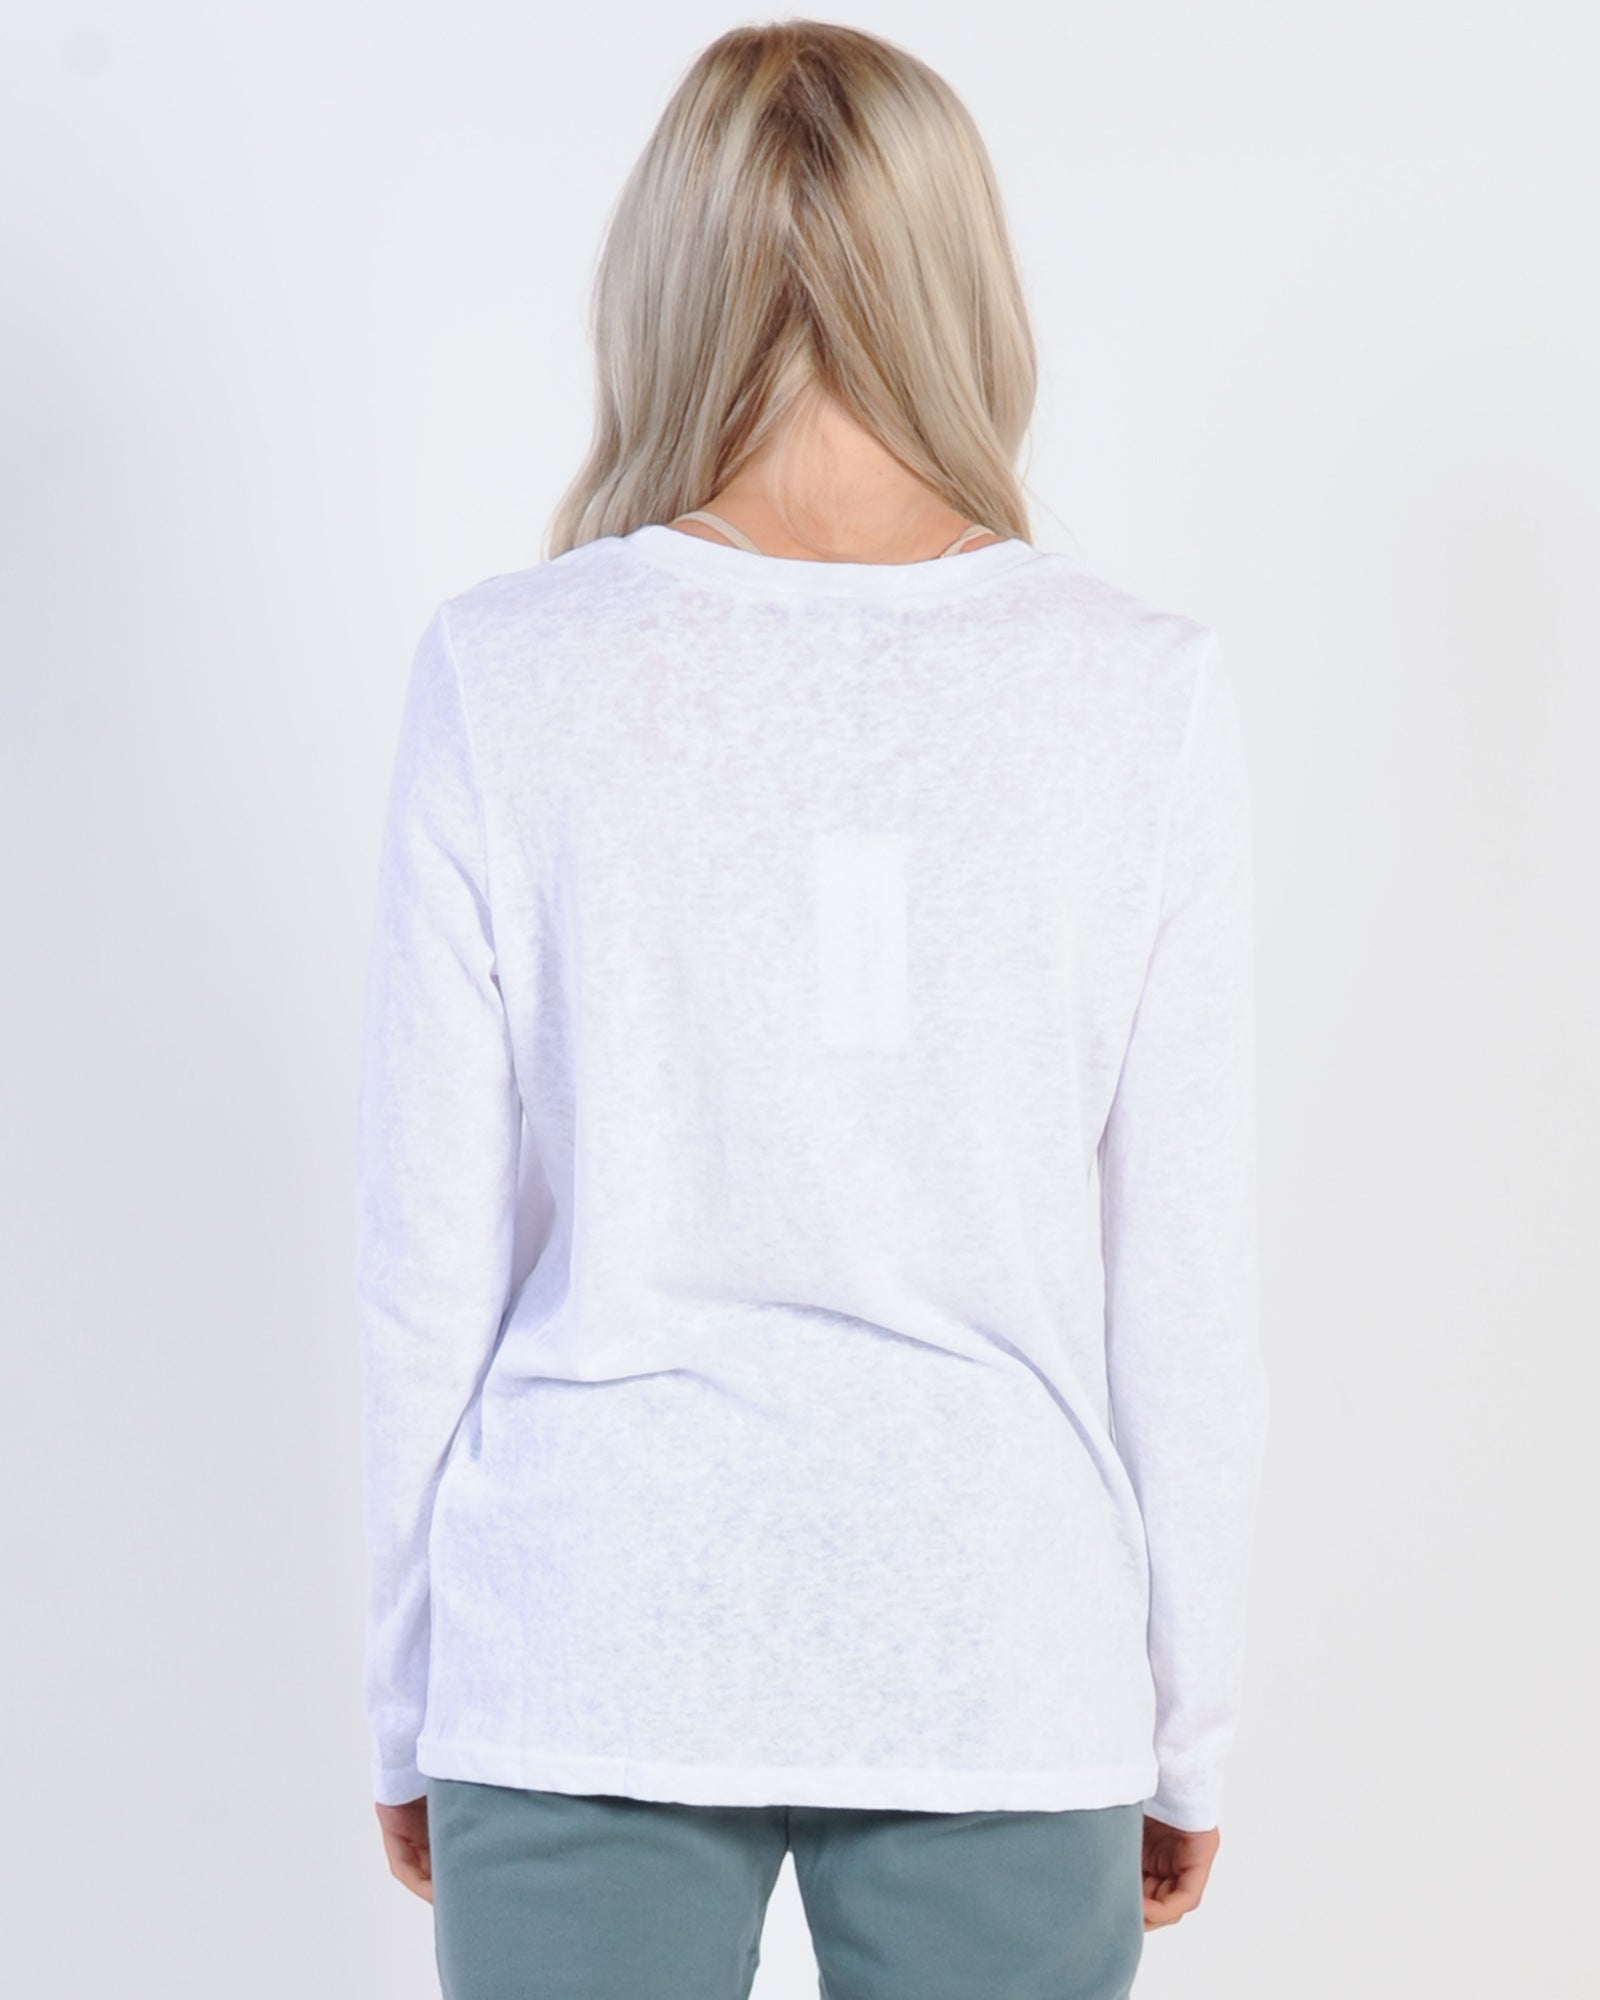 Madison The Label Madison L/S Top - White/White